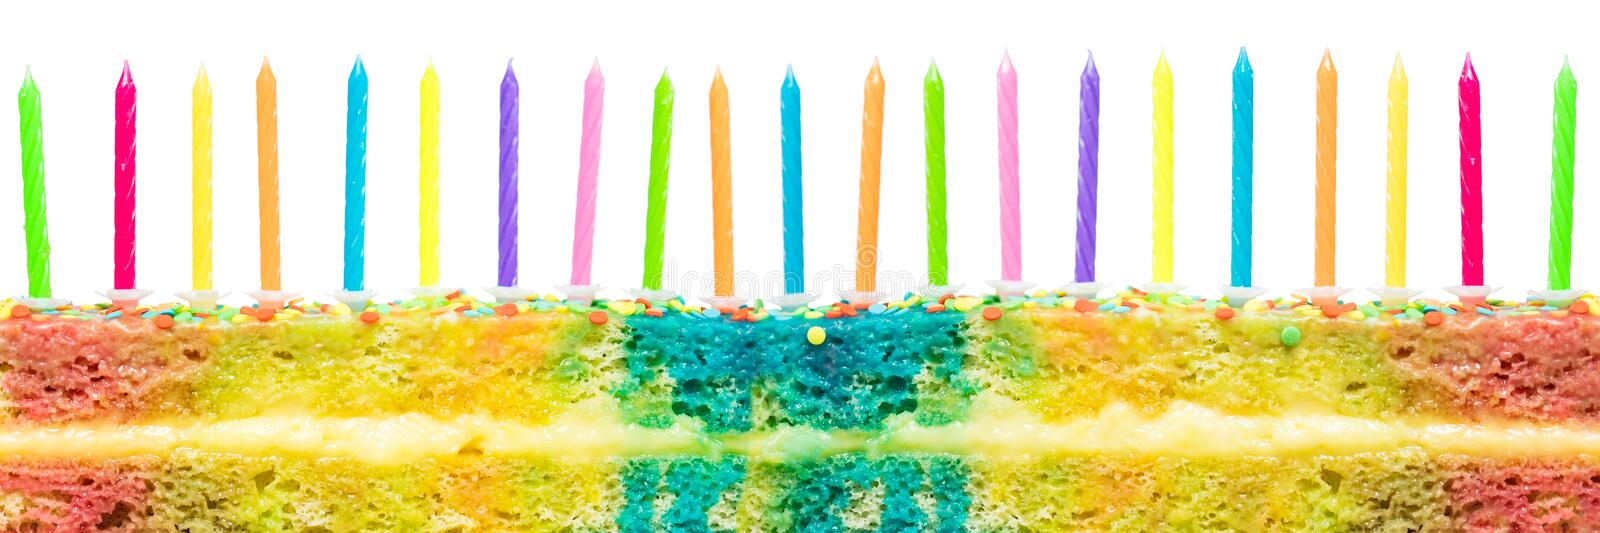 Birthday cake. Colorful birthday cake with lot of many coloured candles on it. Isolated on white background royalty free stock photography